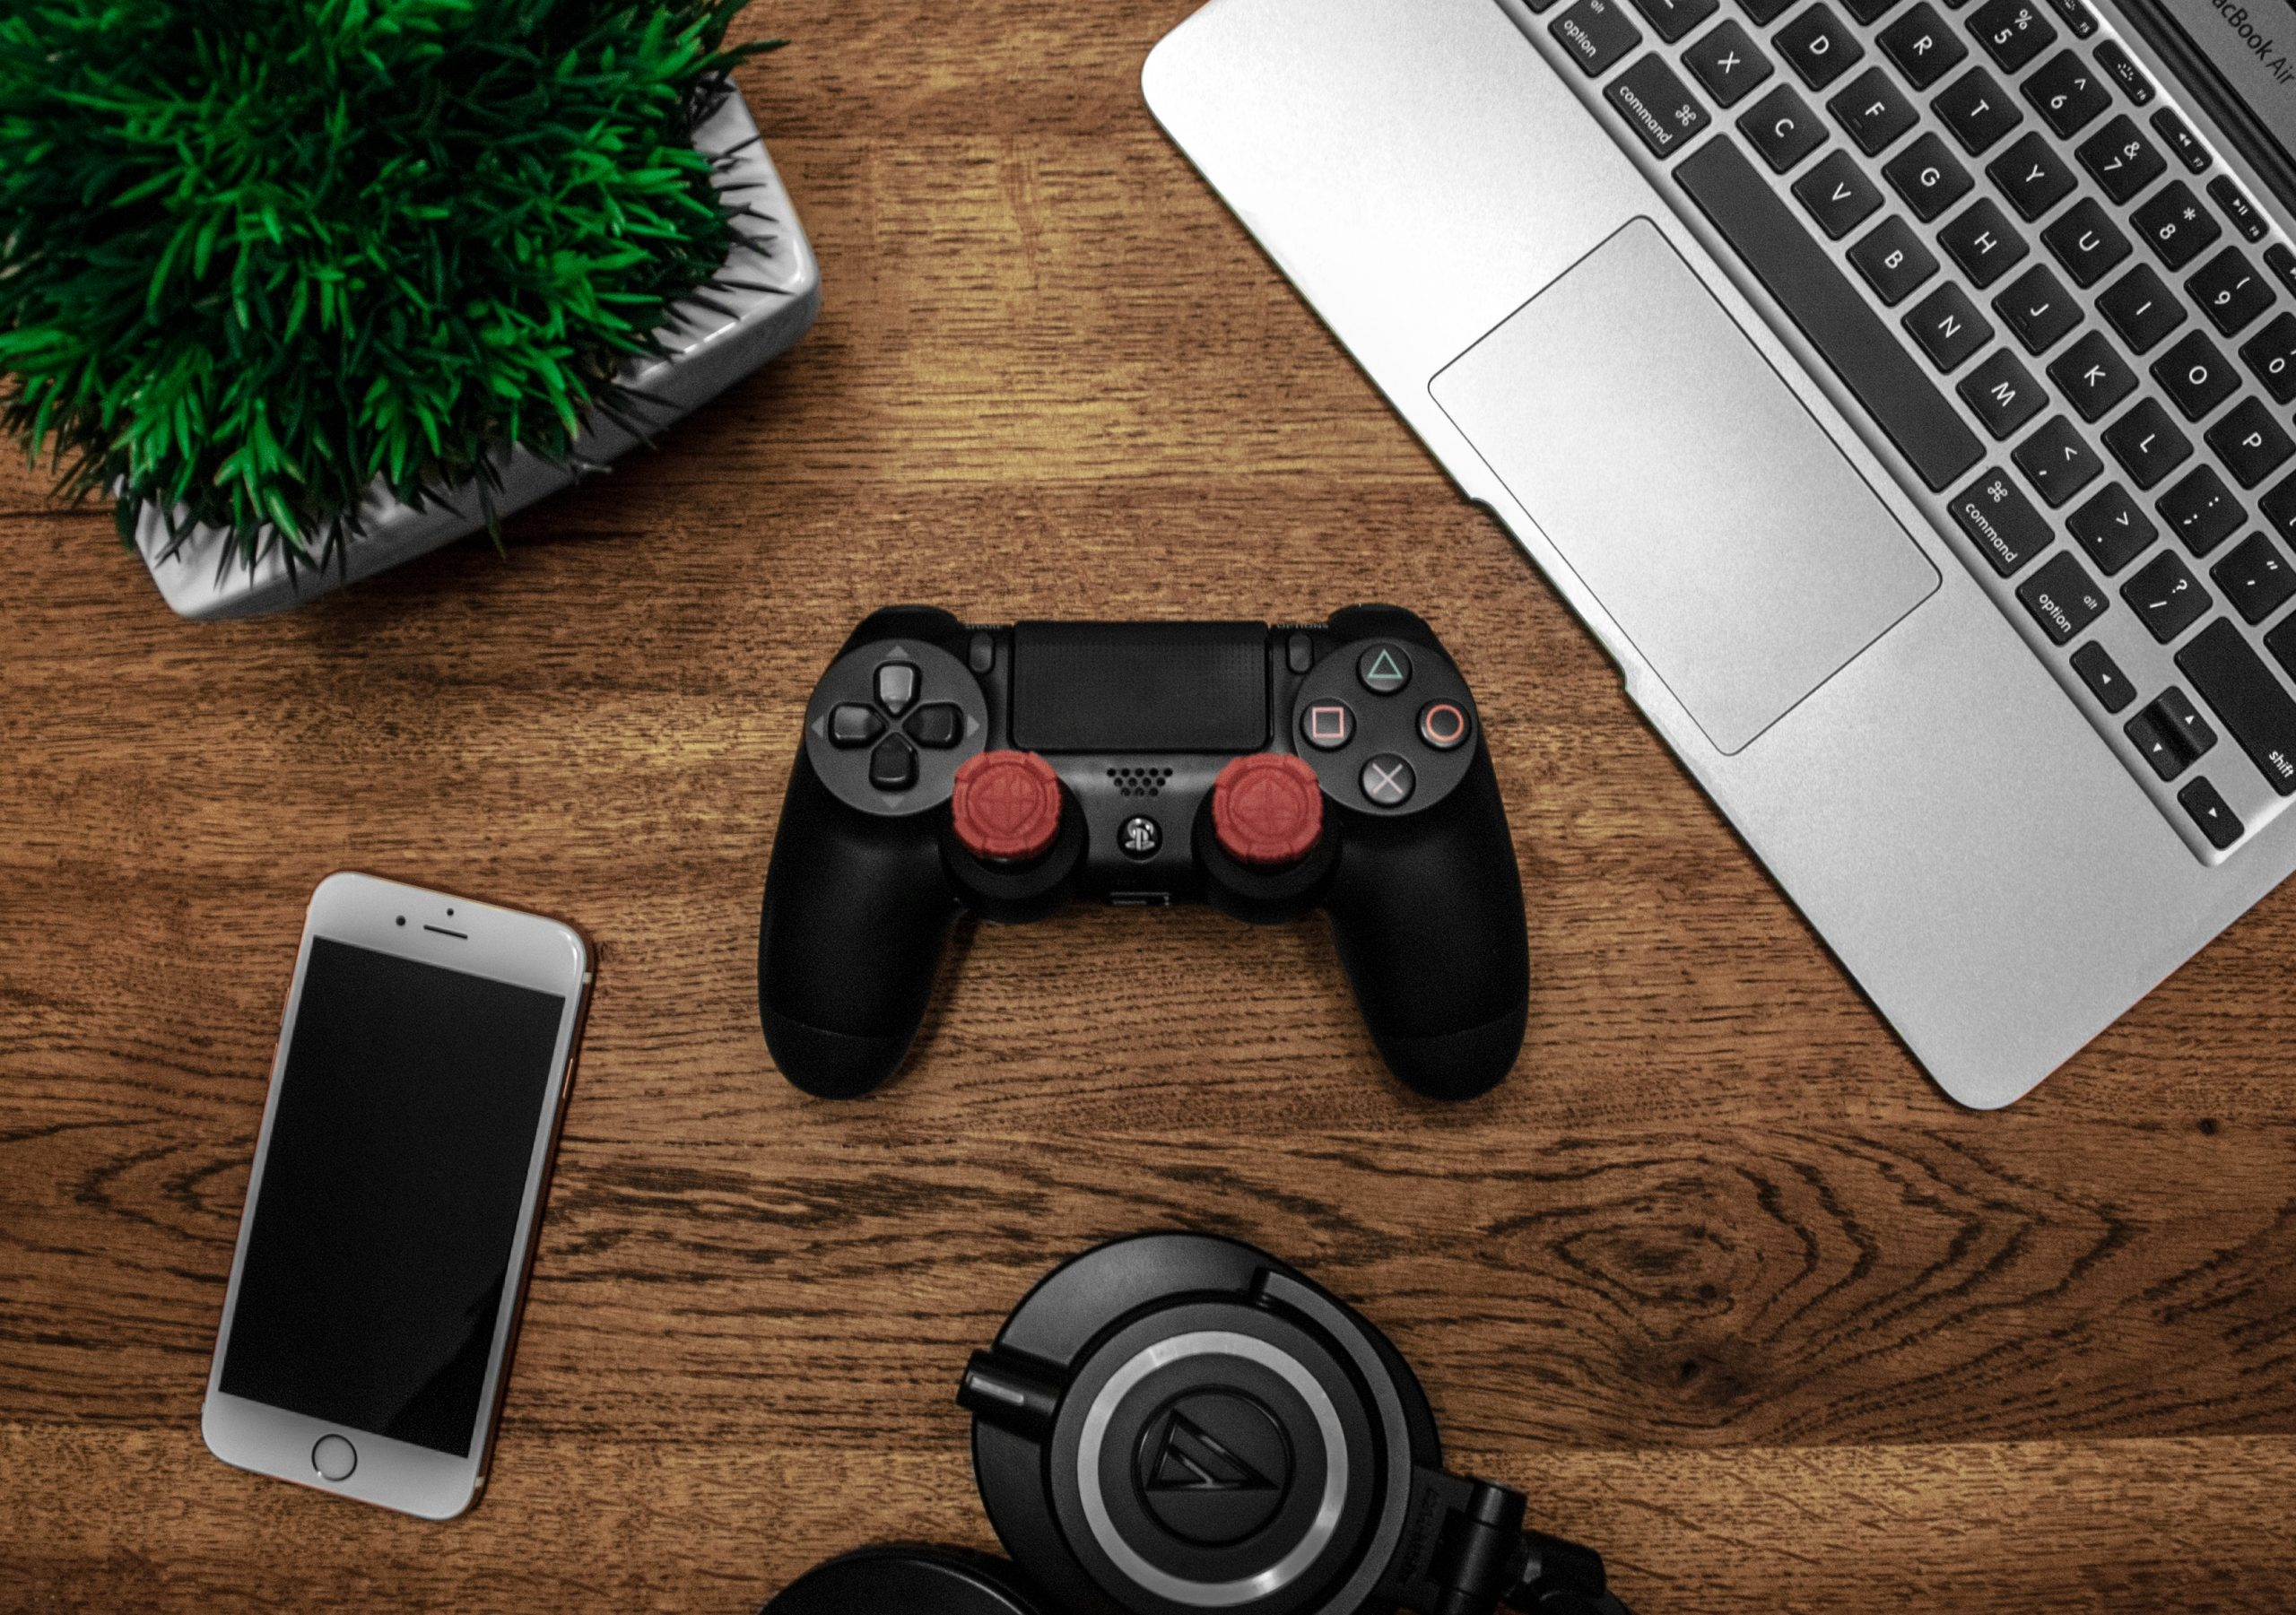 🏆 Ps4 remote play windows 7 ultimate | PS4 Remote Play